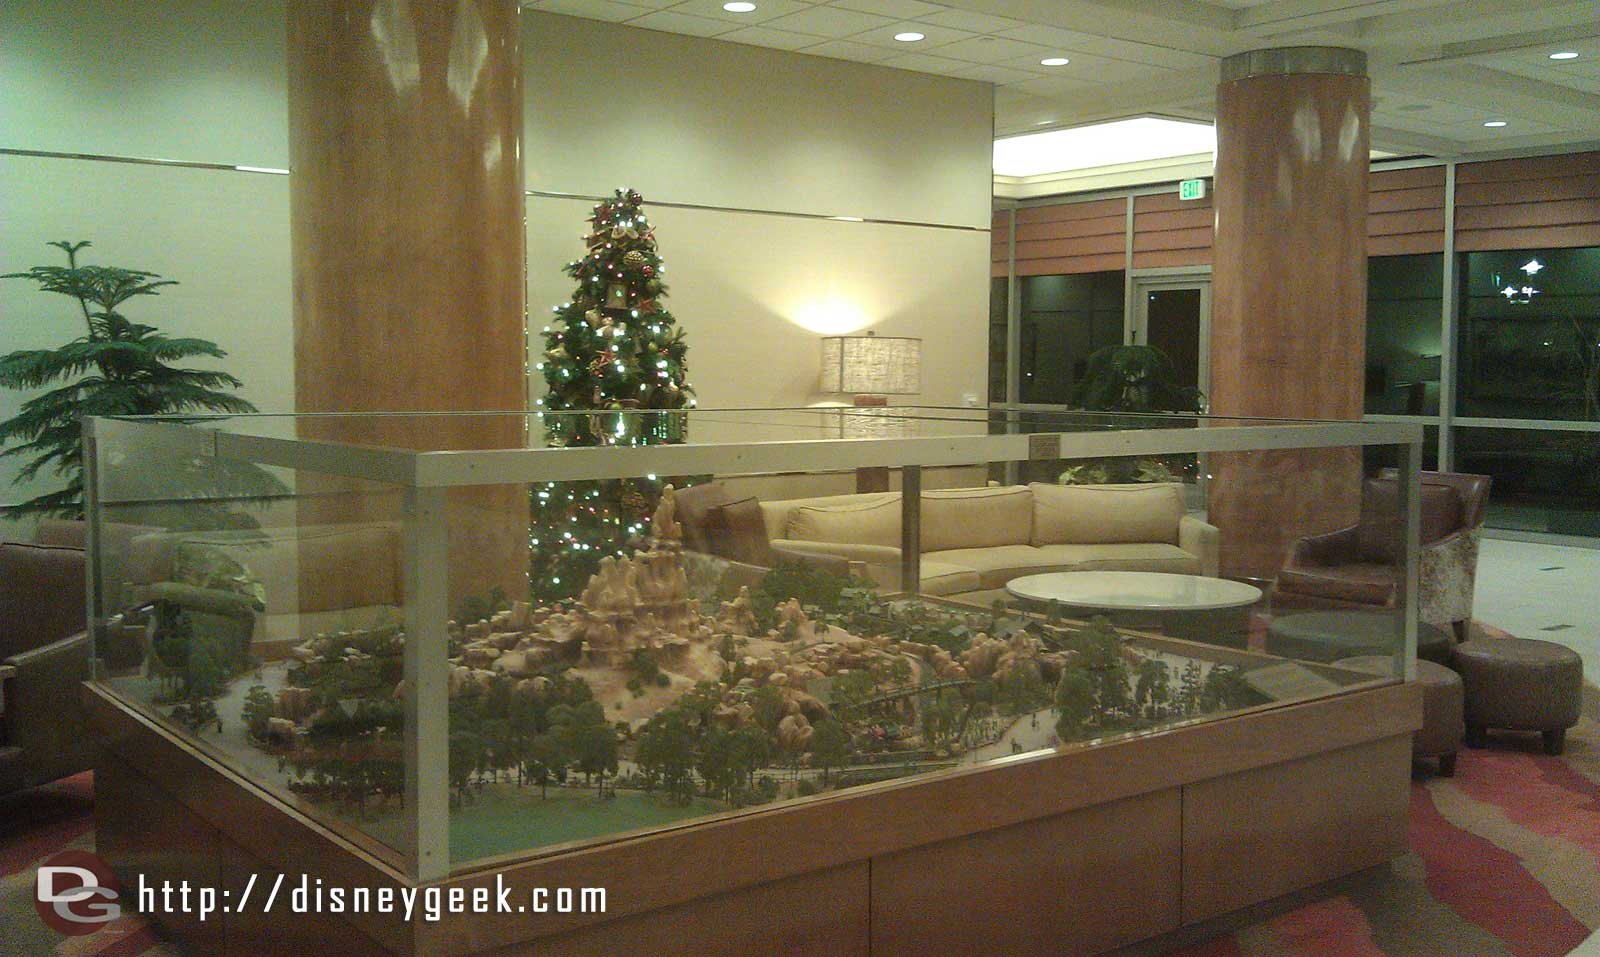 A small tree in the Frontier Tower of the Disneyland Hotel